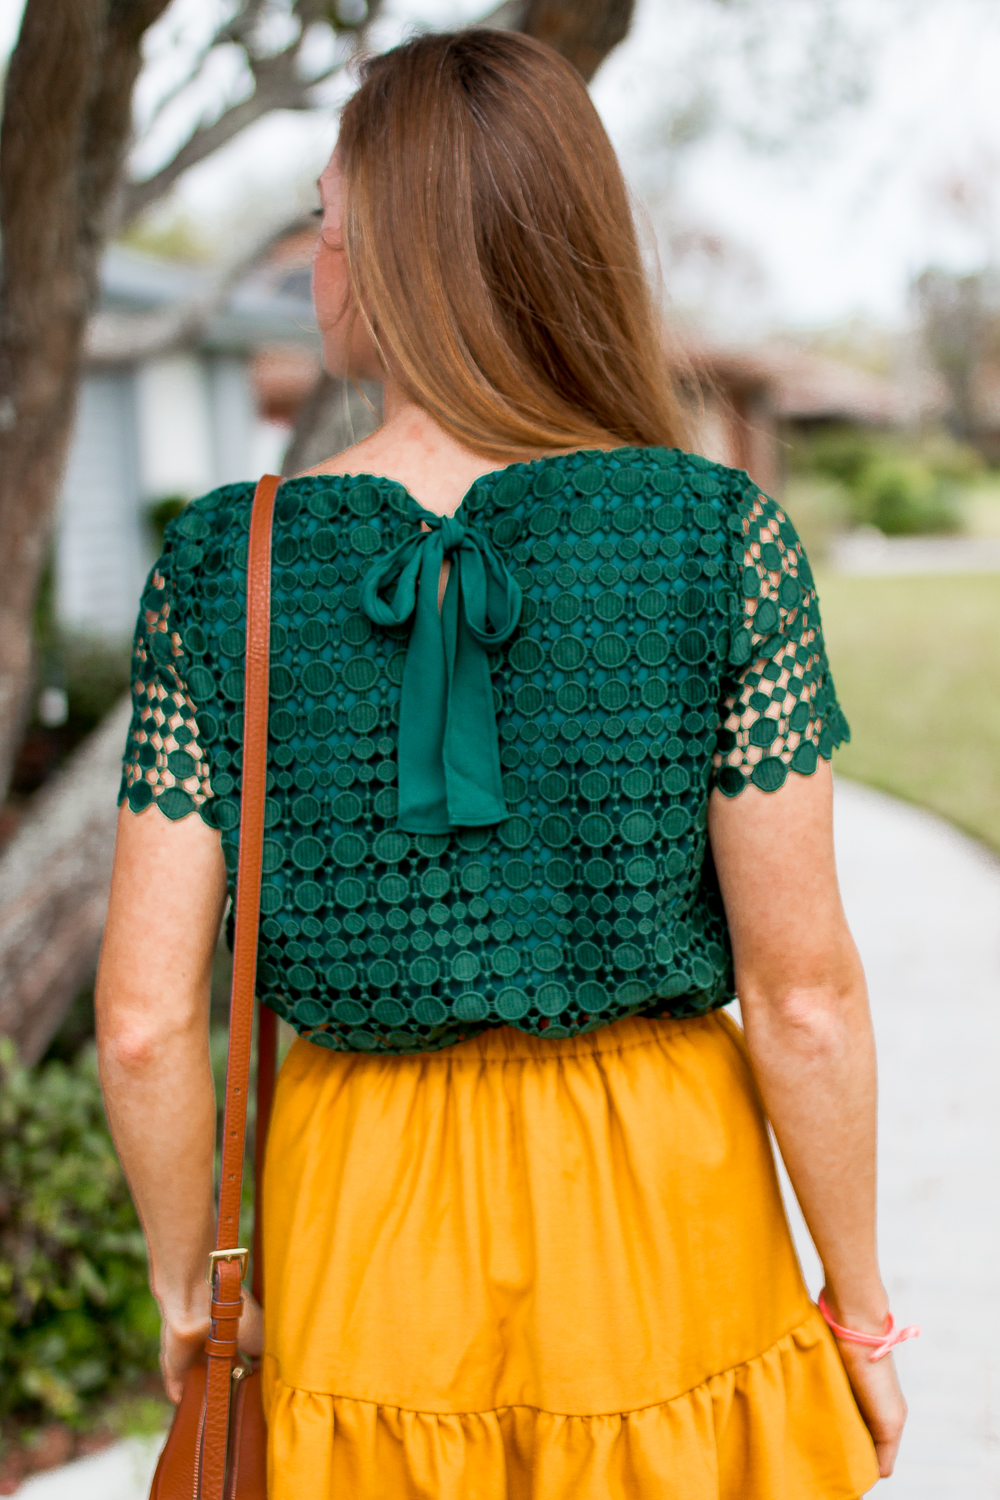 Mixing and Matching Seasonal Colors into Your Wardrobe | How to Dress for Fall | How to Incorporate Fall Colors in Your Wardrobe | Fall Outfit Ideas 2018 | Mustard Ruffle Skirt | Emerald Top with Bow Tie - Sunshine Style